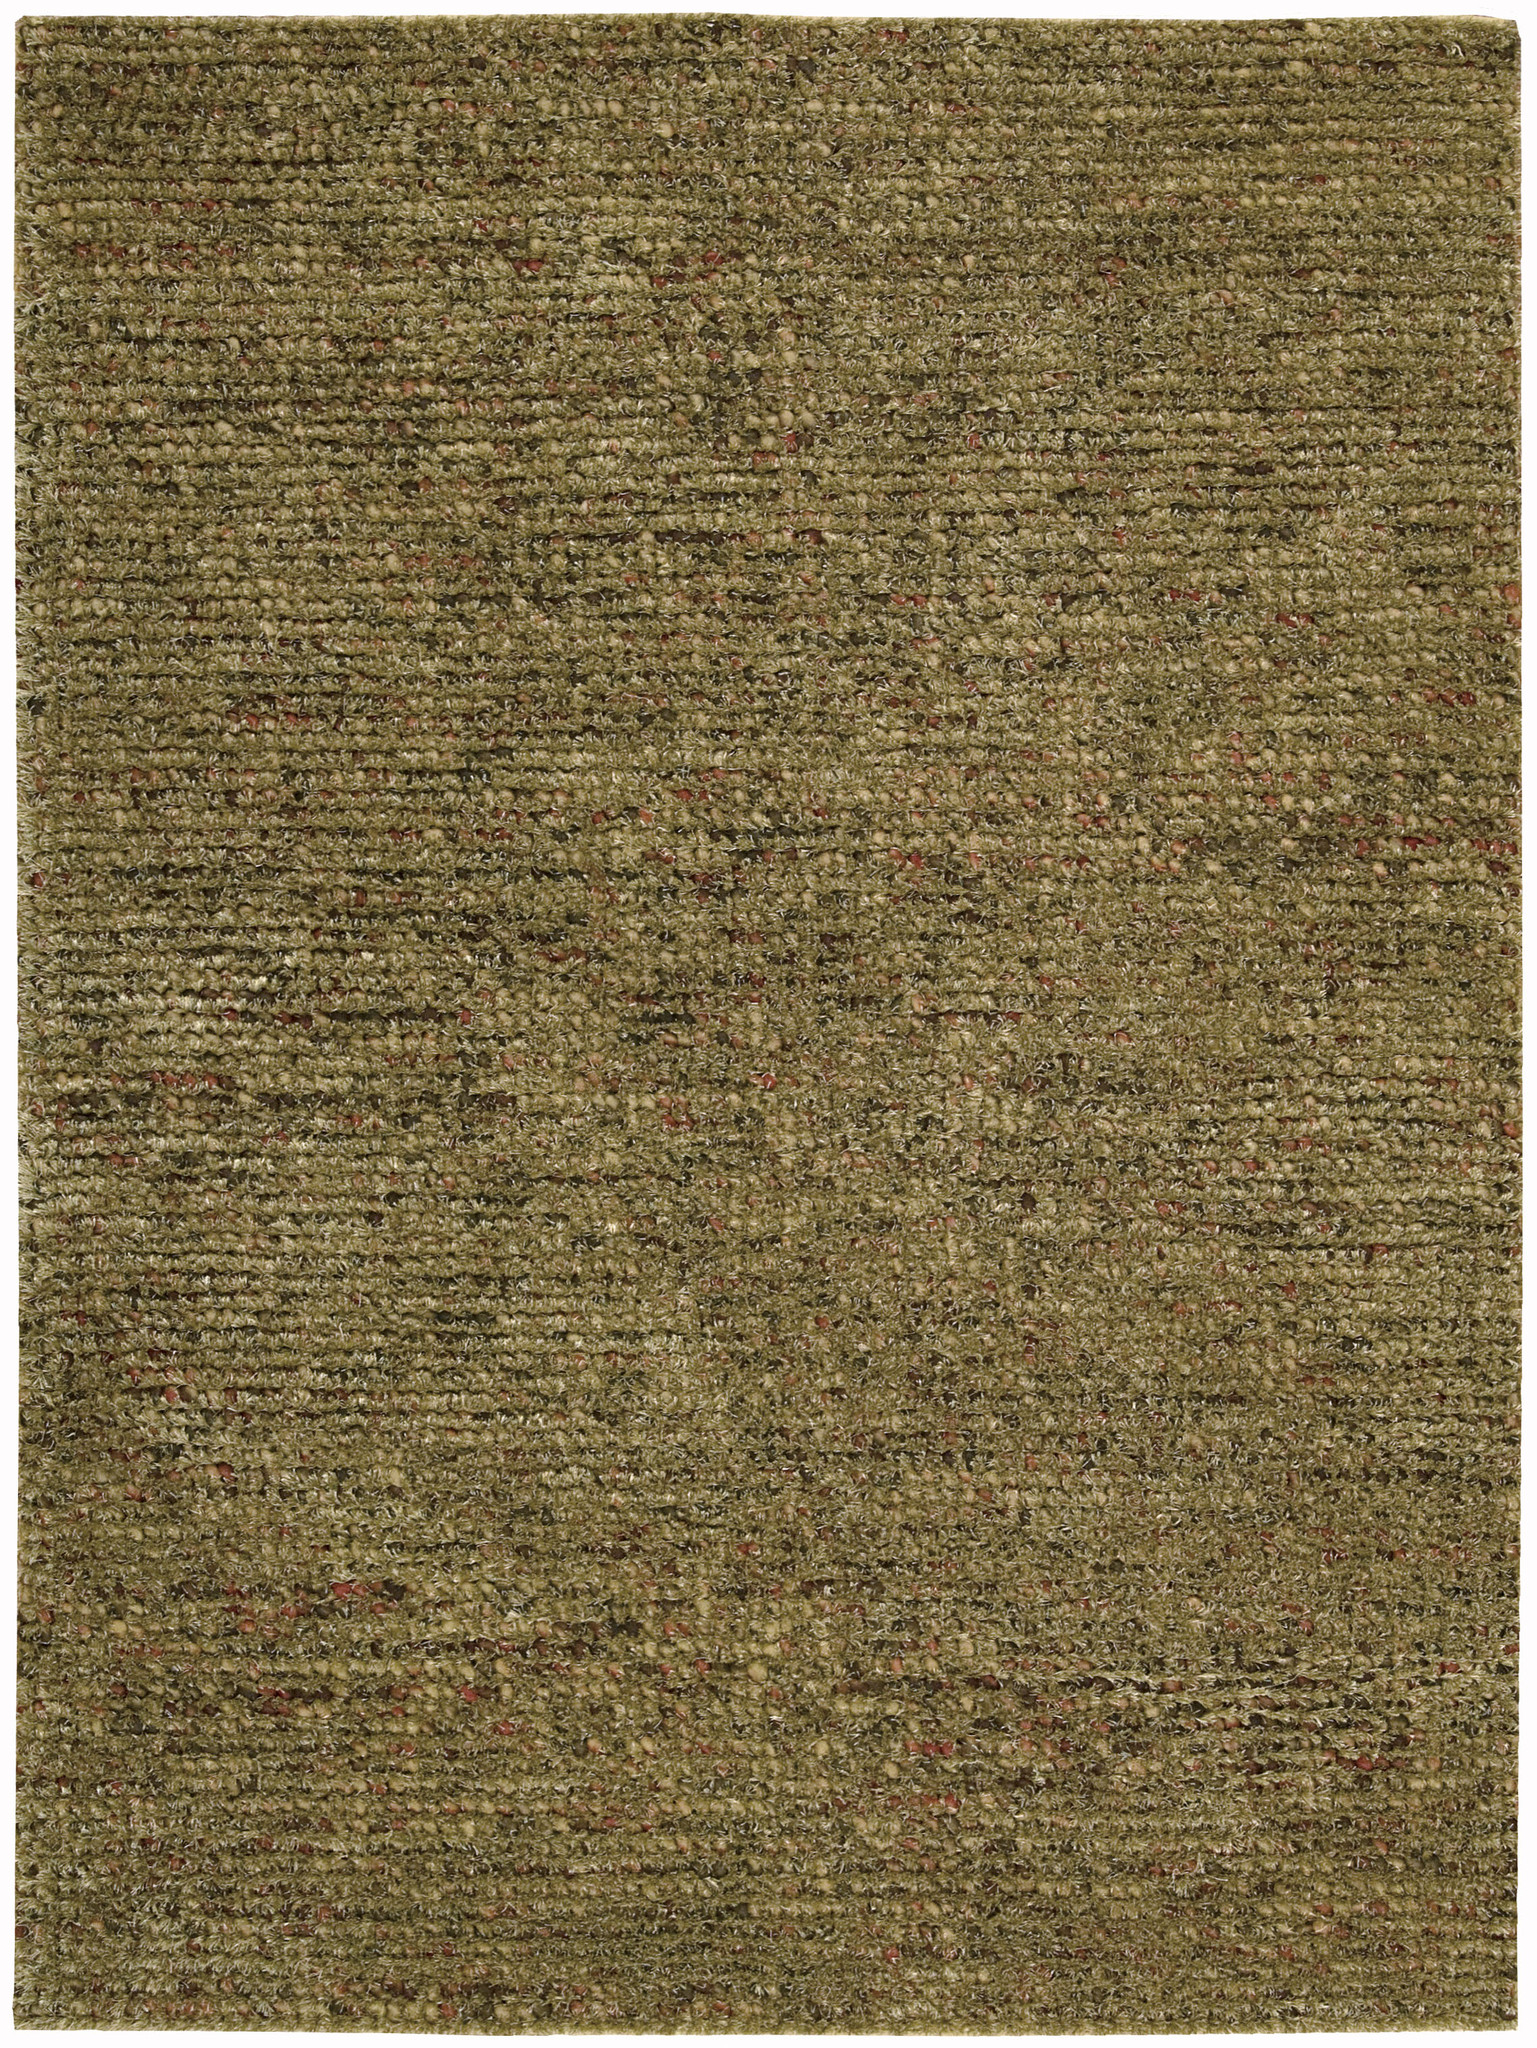 Fantasia collection wool blend area rug in terracotta for Home accents rug collection